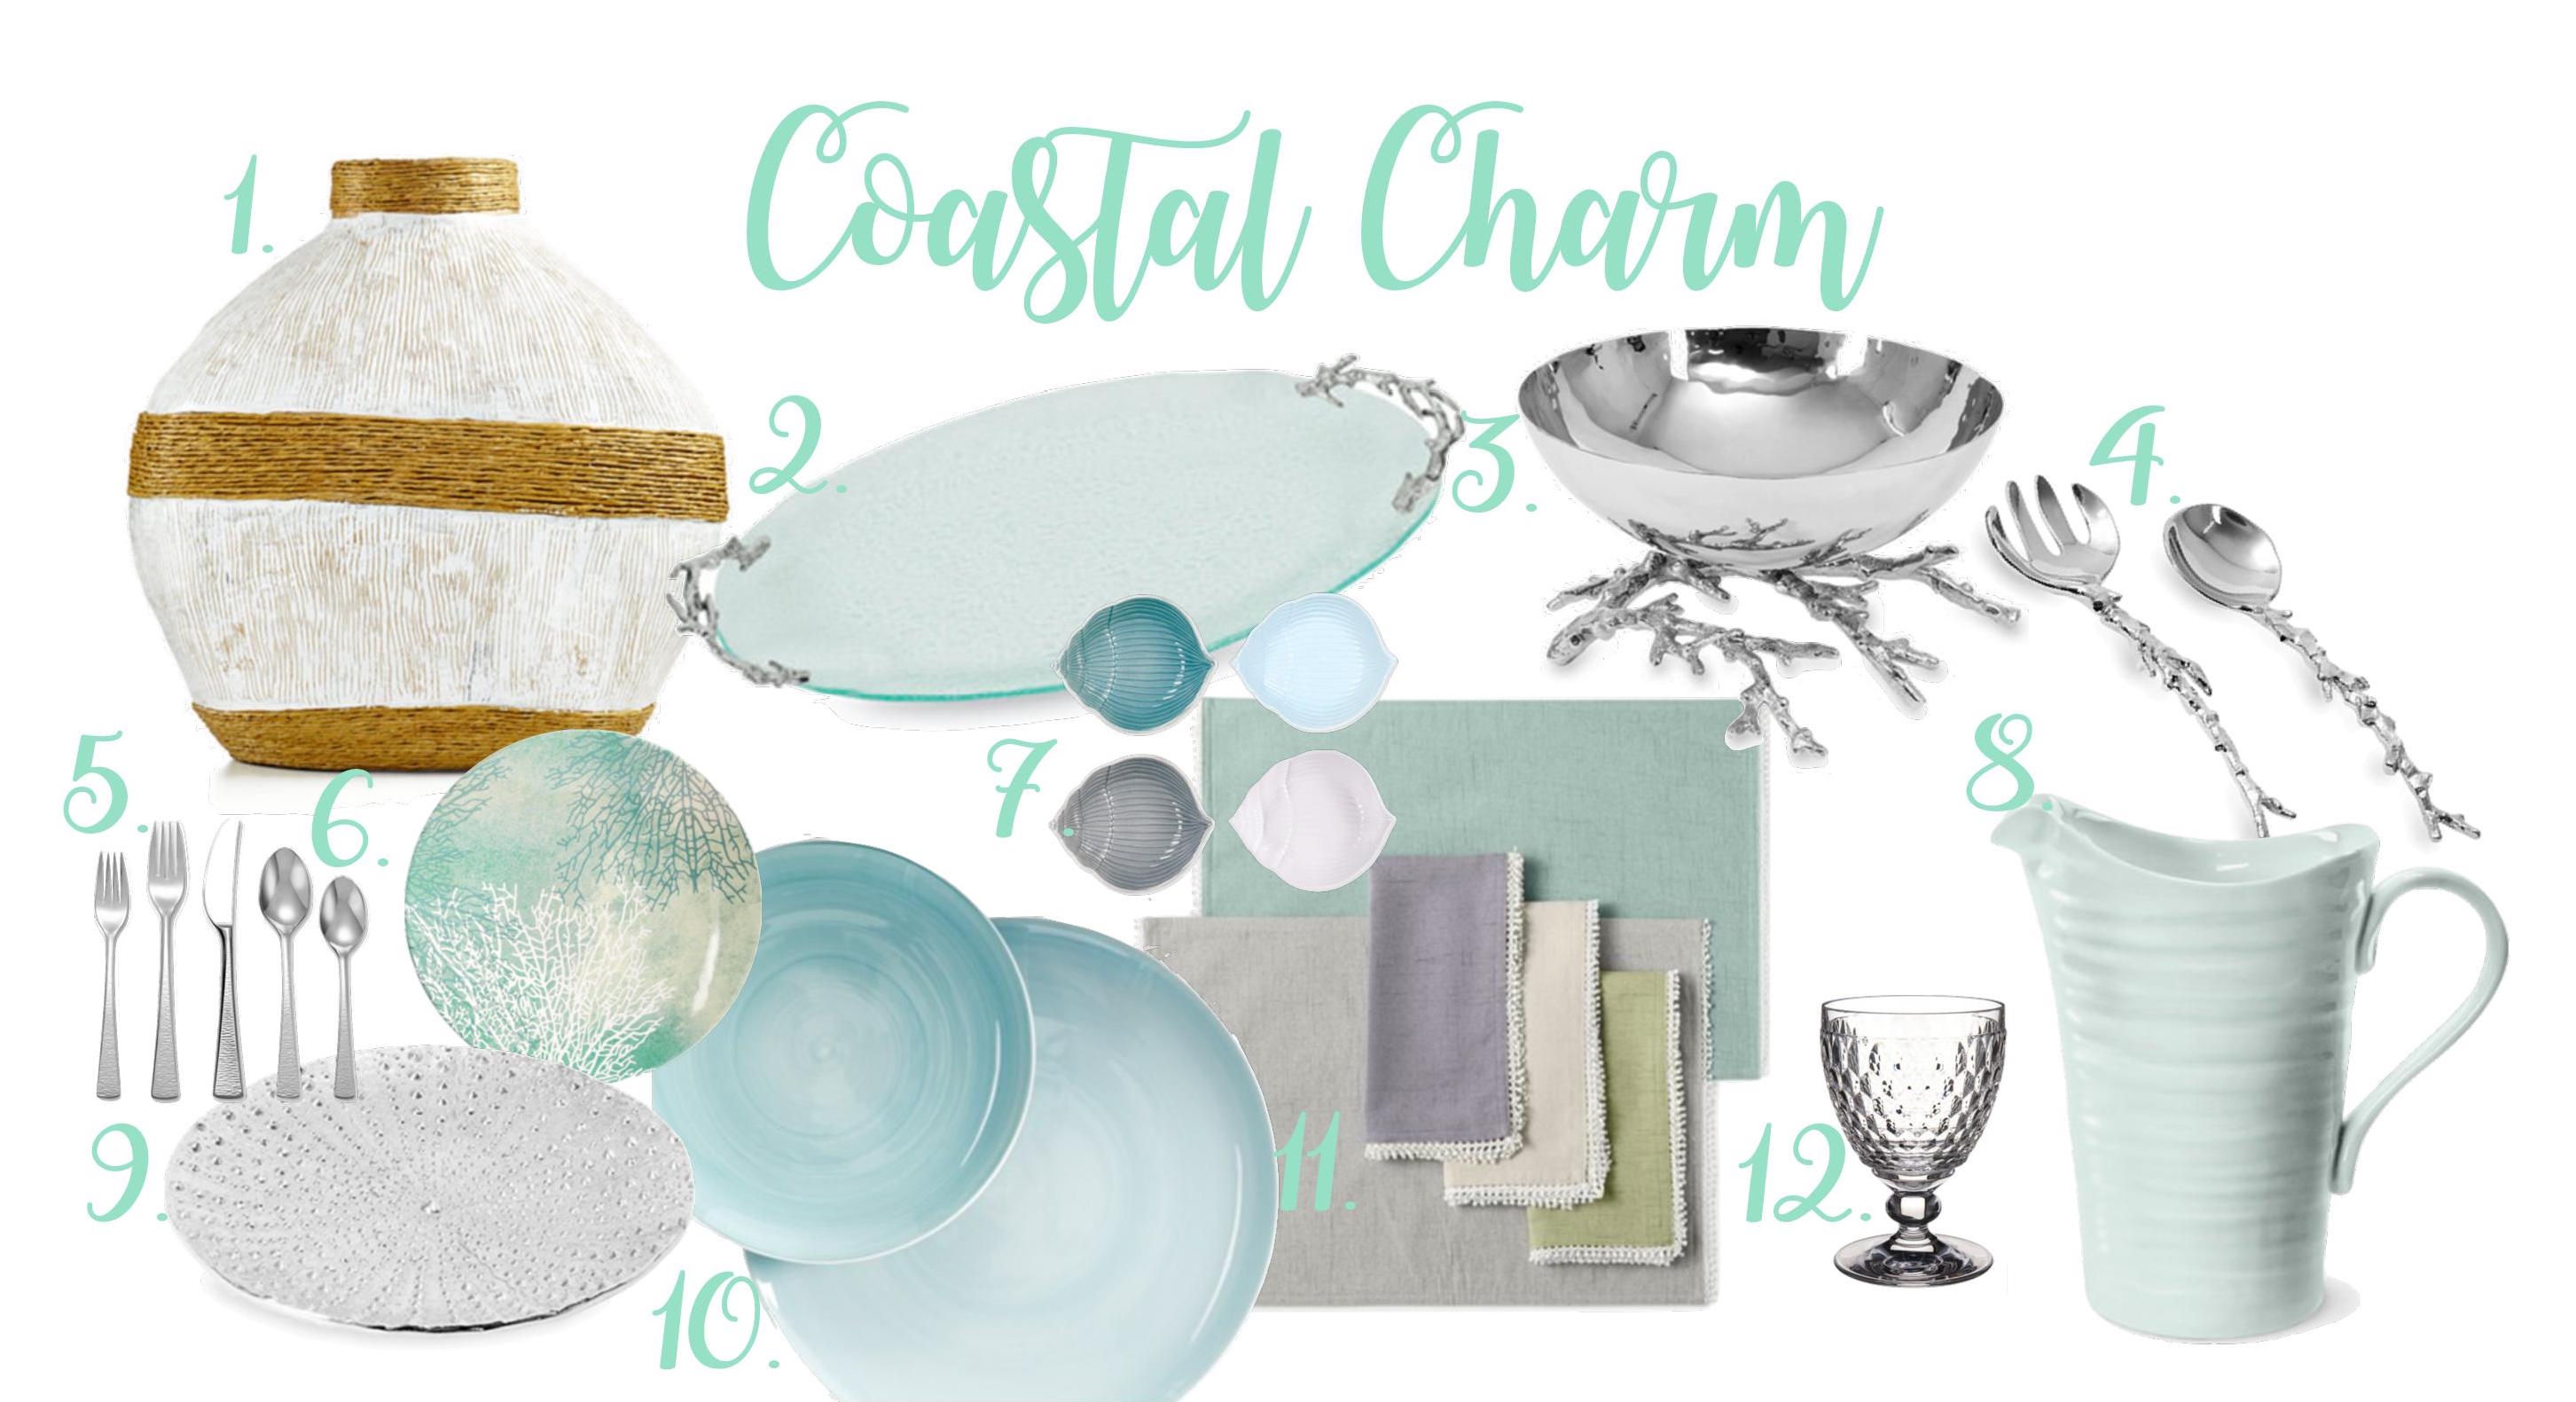 Coastal table setting | Michael Aram ocean coral platter | Michael Aram ocean coral serving bowl | Shell bowl set | Michael Aram sea urchin platter | Lenox French Perle placemat and napkins